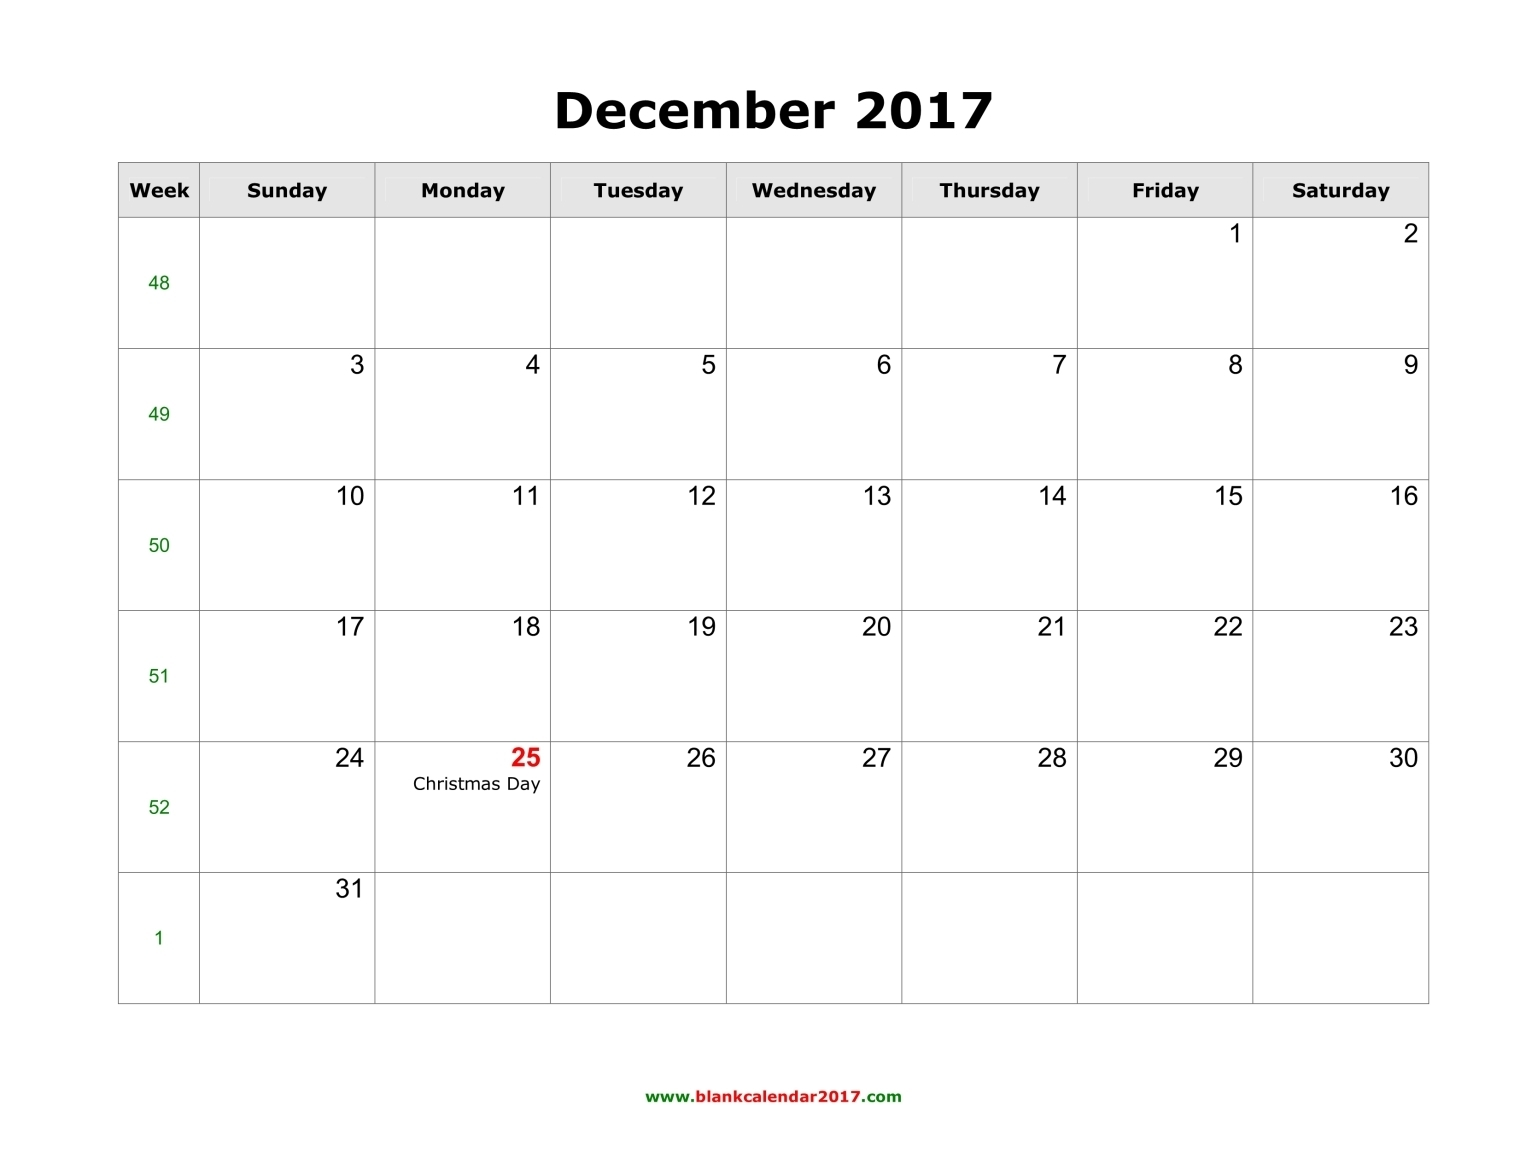 December 2017 Calendar Cute | printable calendar templates